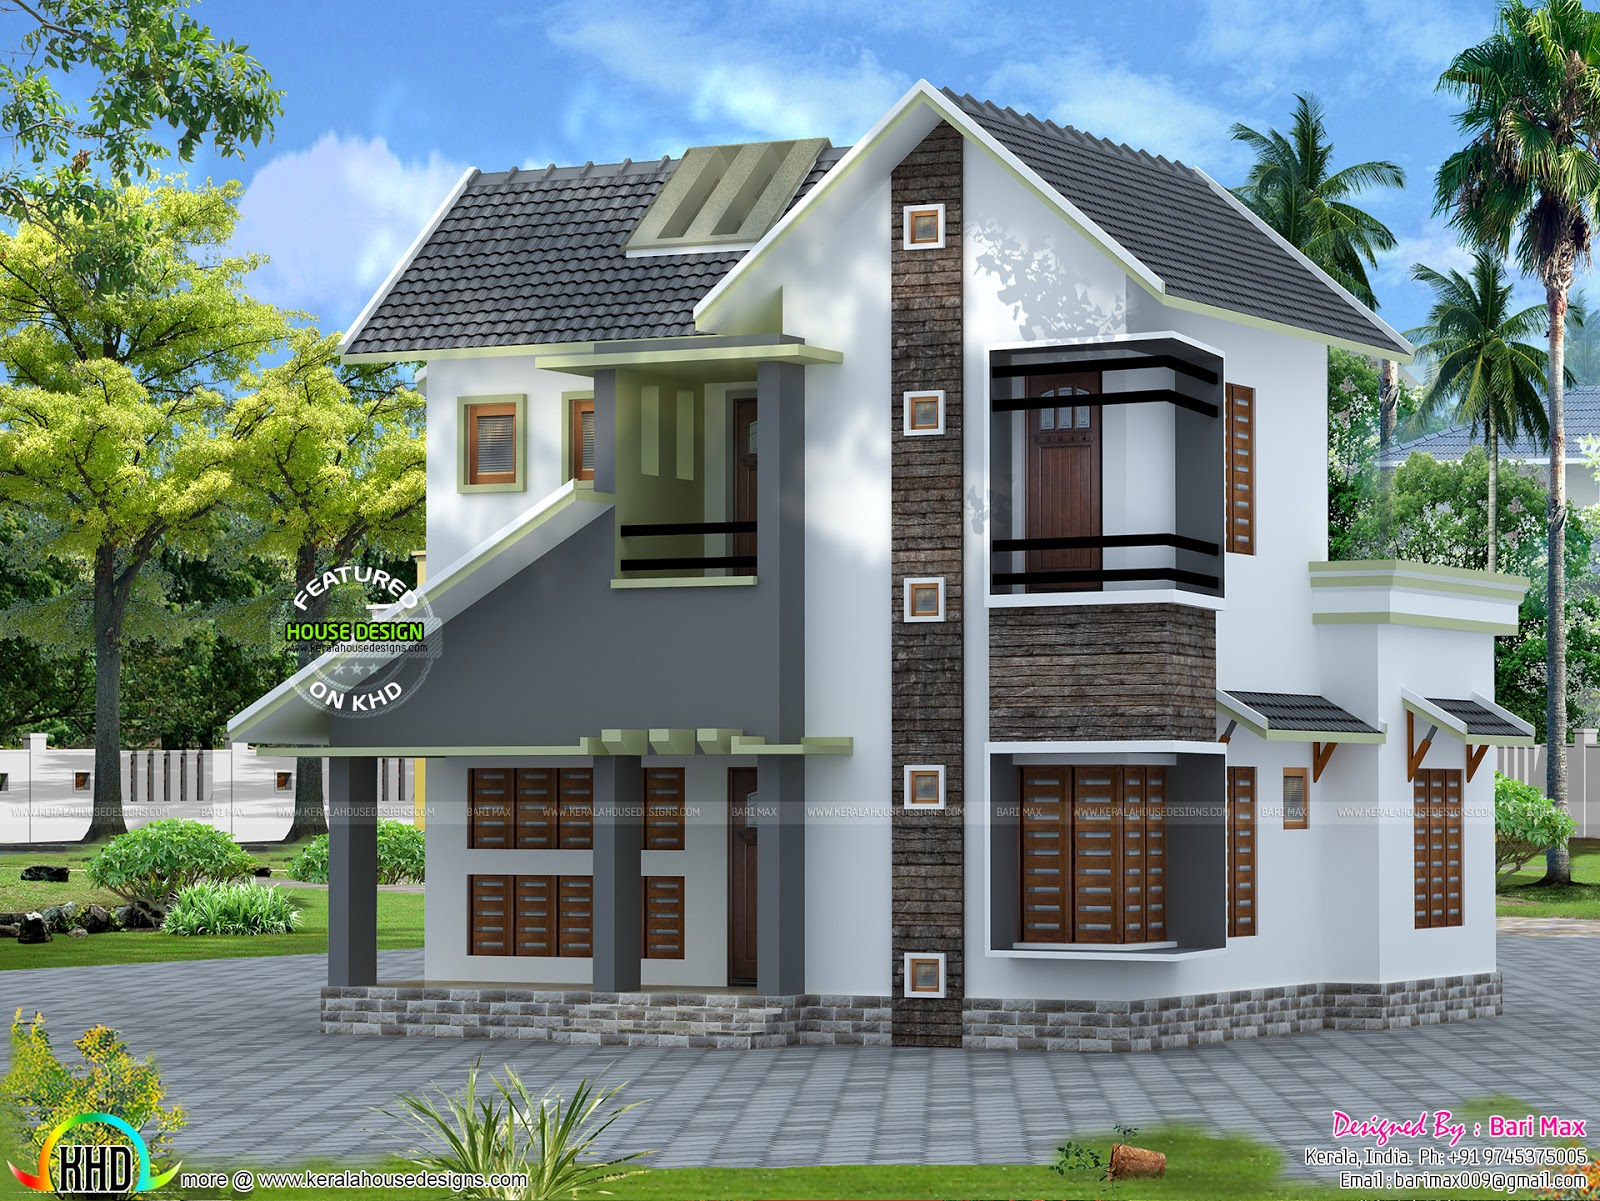 Slope roof low cost home design kerala home design and for Low building cost house plans